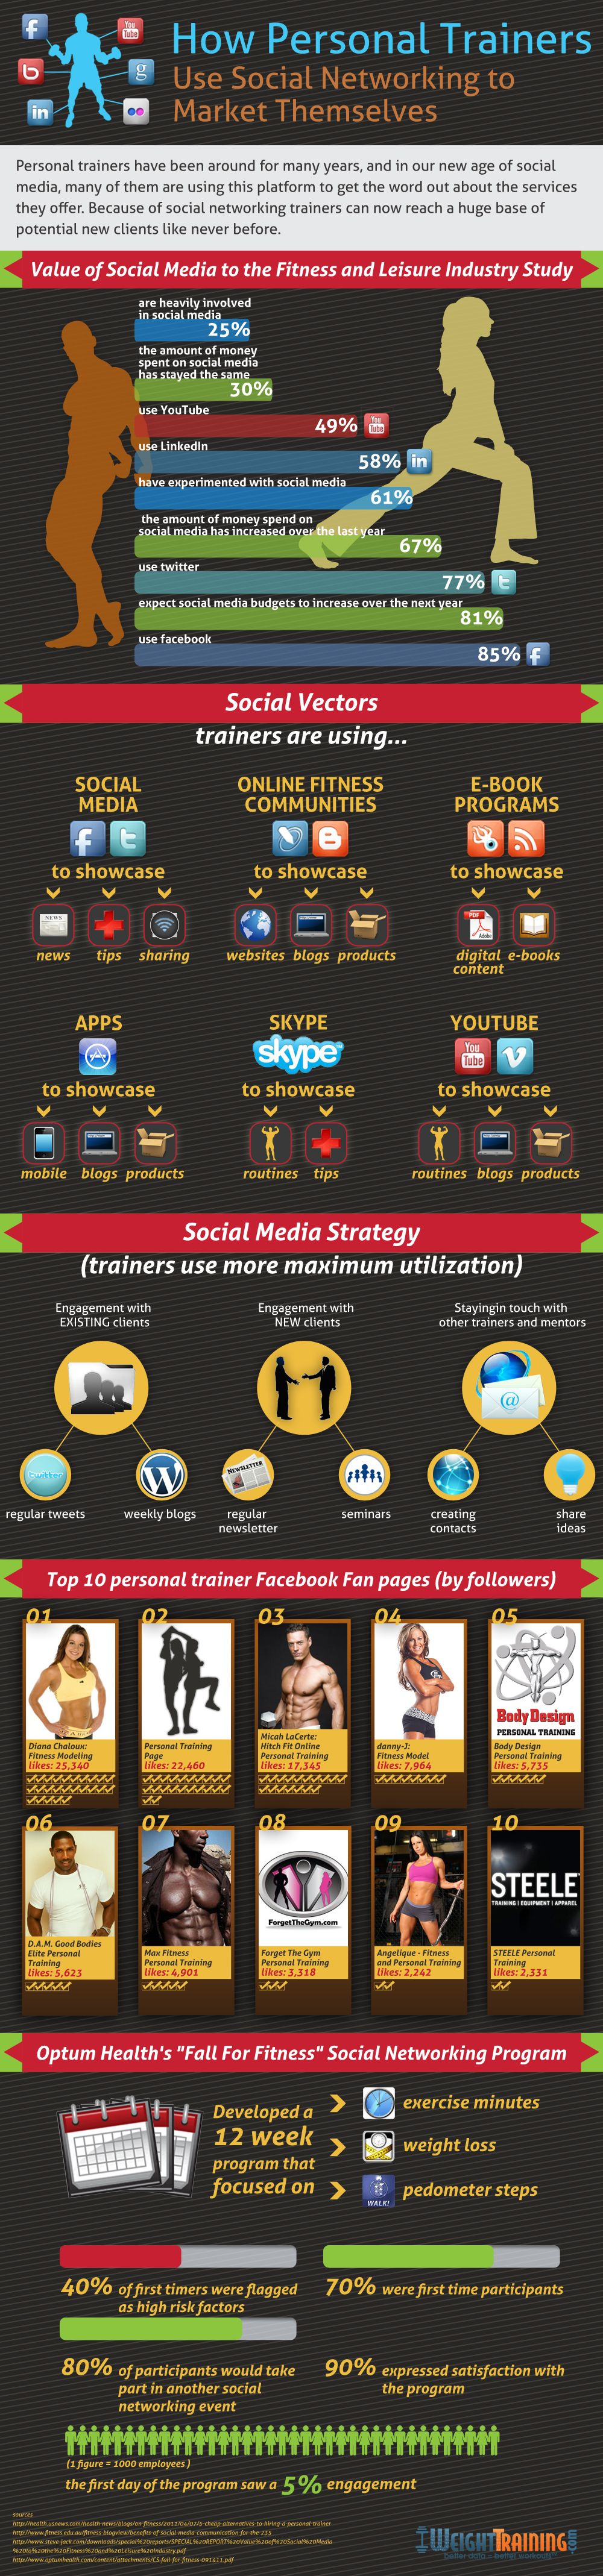 Social networking is an important promotional tool for everyone from politicians to celebrities to celebrity politicans (like the Governator). Well, aside from celebrity politicians, there are also personal trainers who employ social media to getthe word out about their personal training programs.